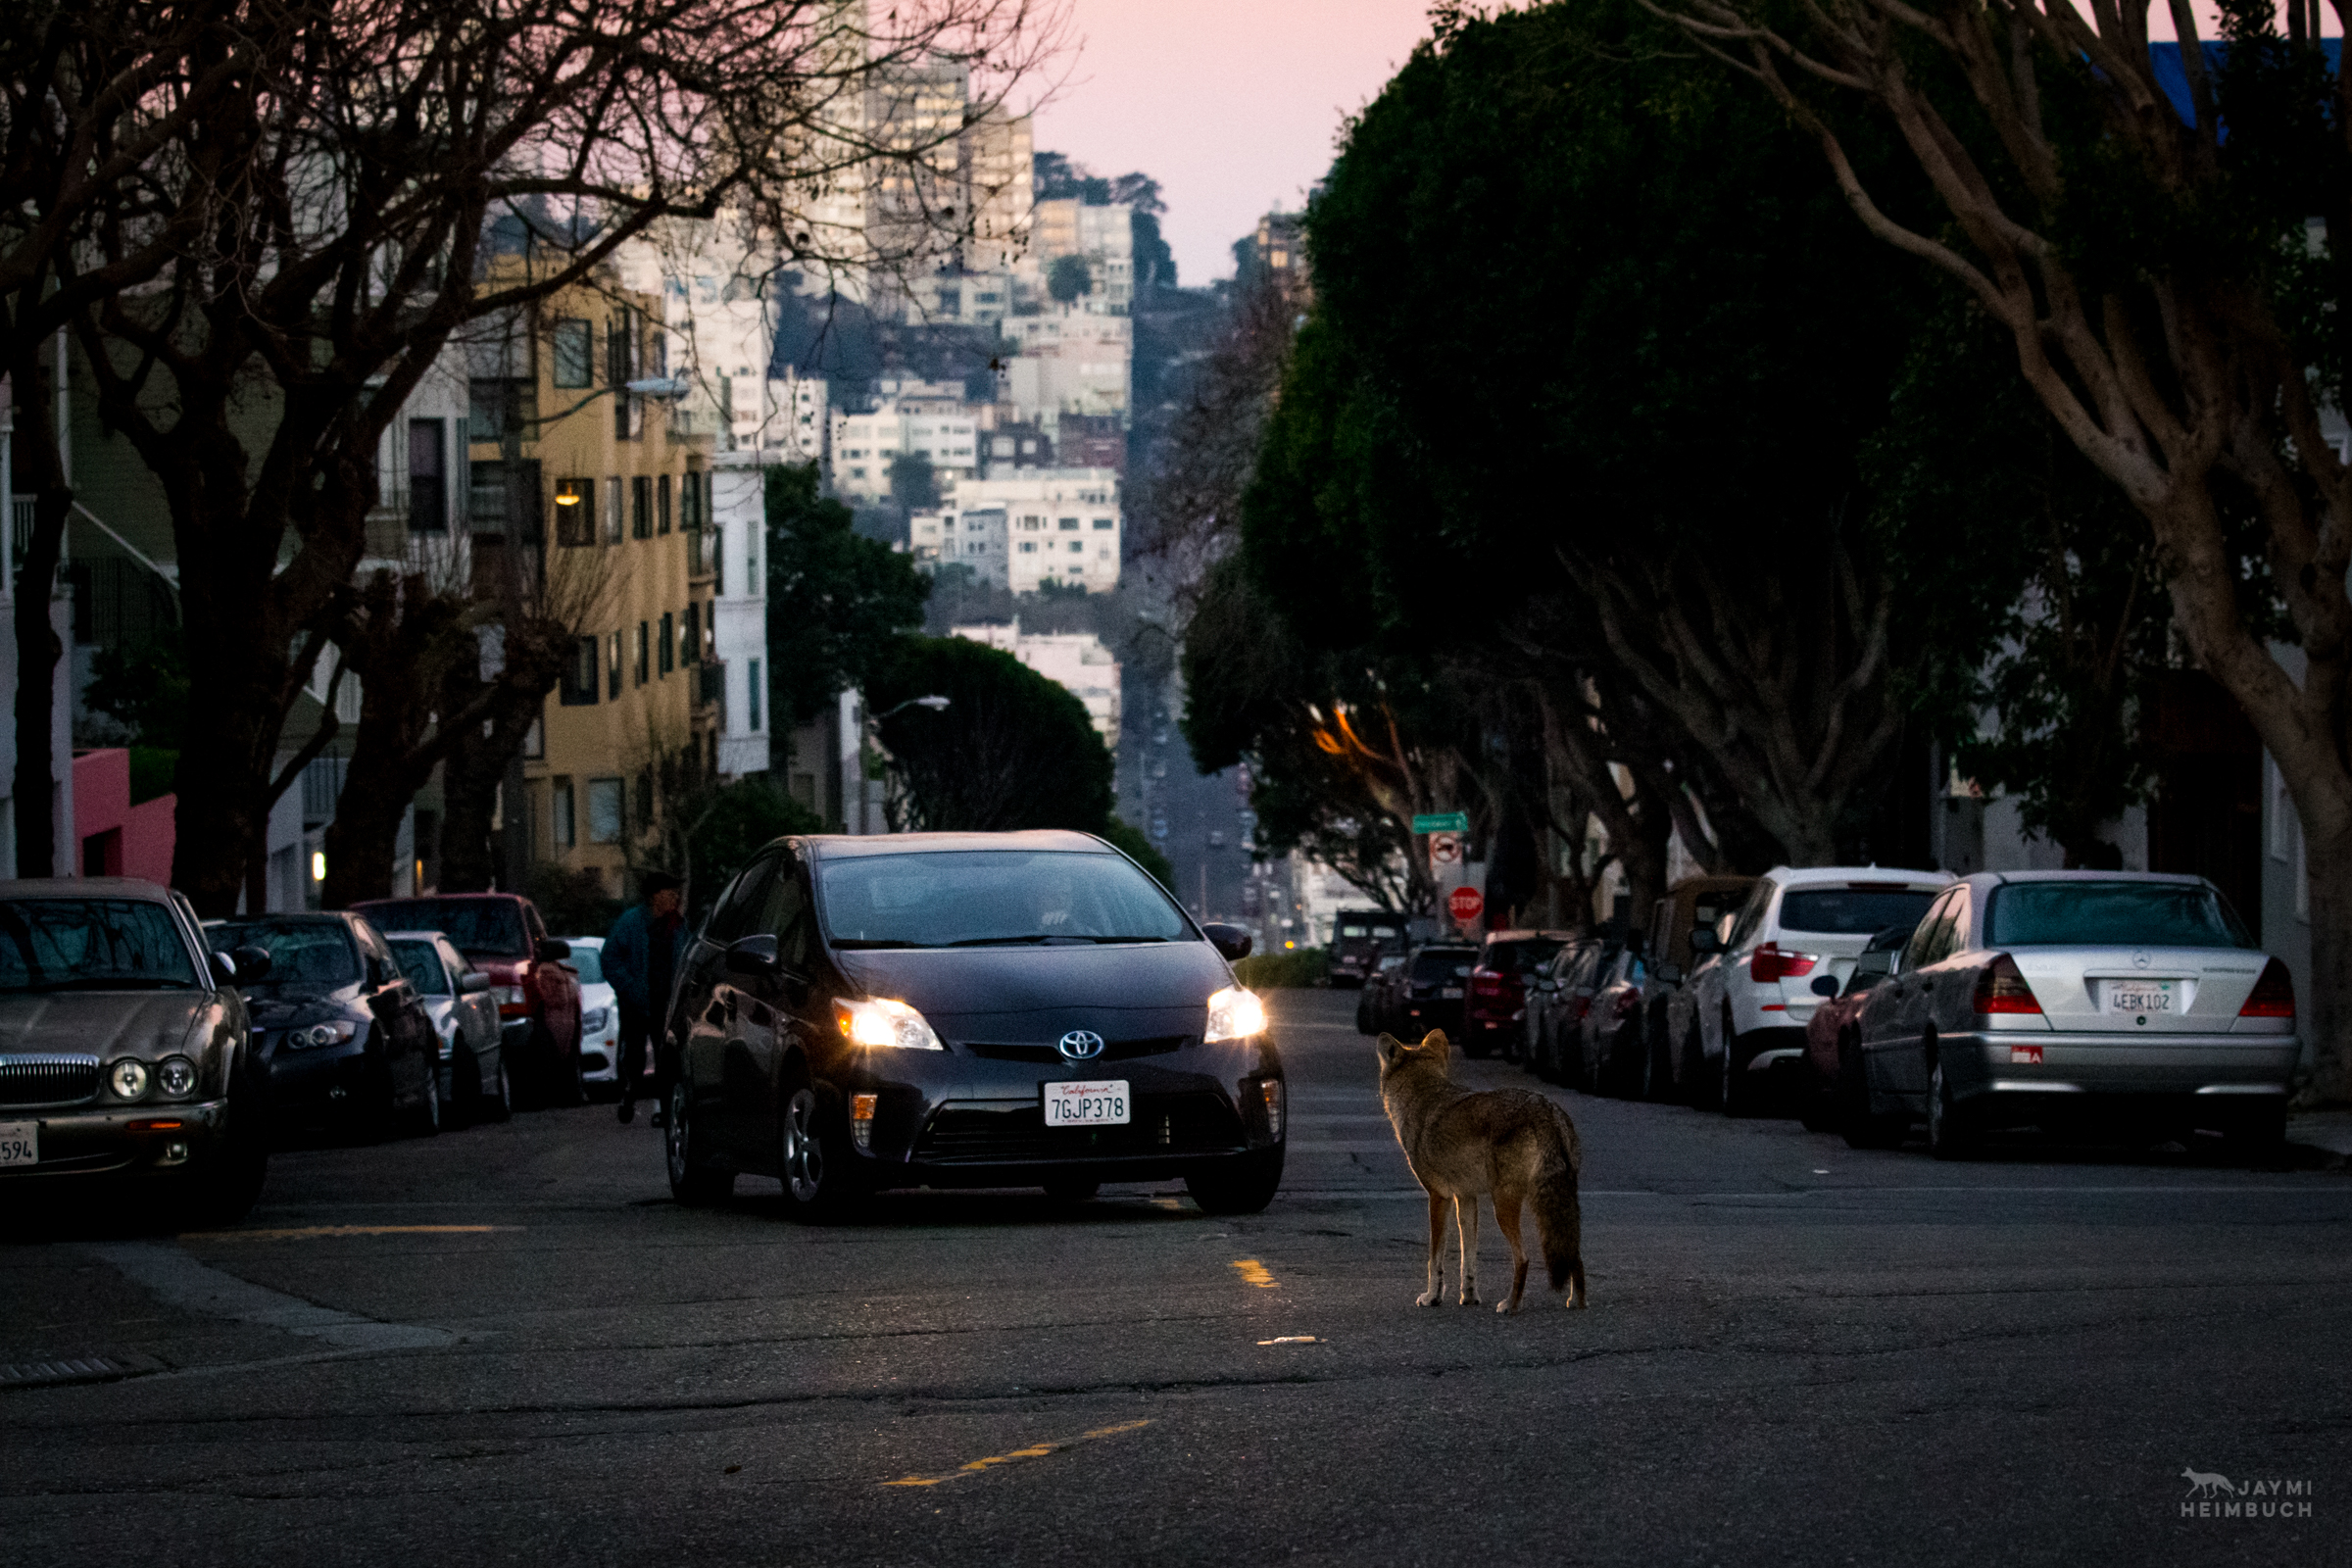 Coyote (canis latrans) female crossing street in front of oncoming car, San Francisco,  California